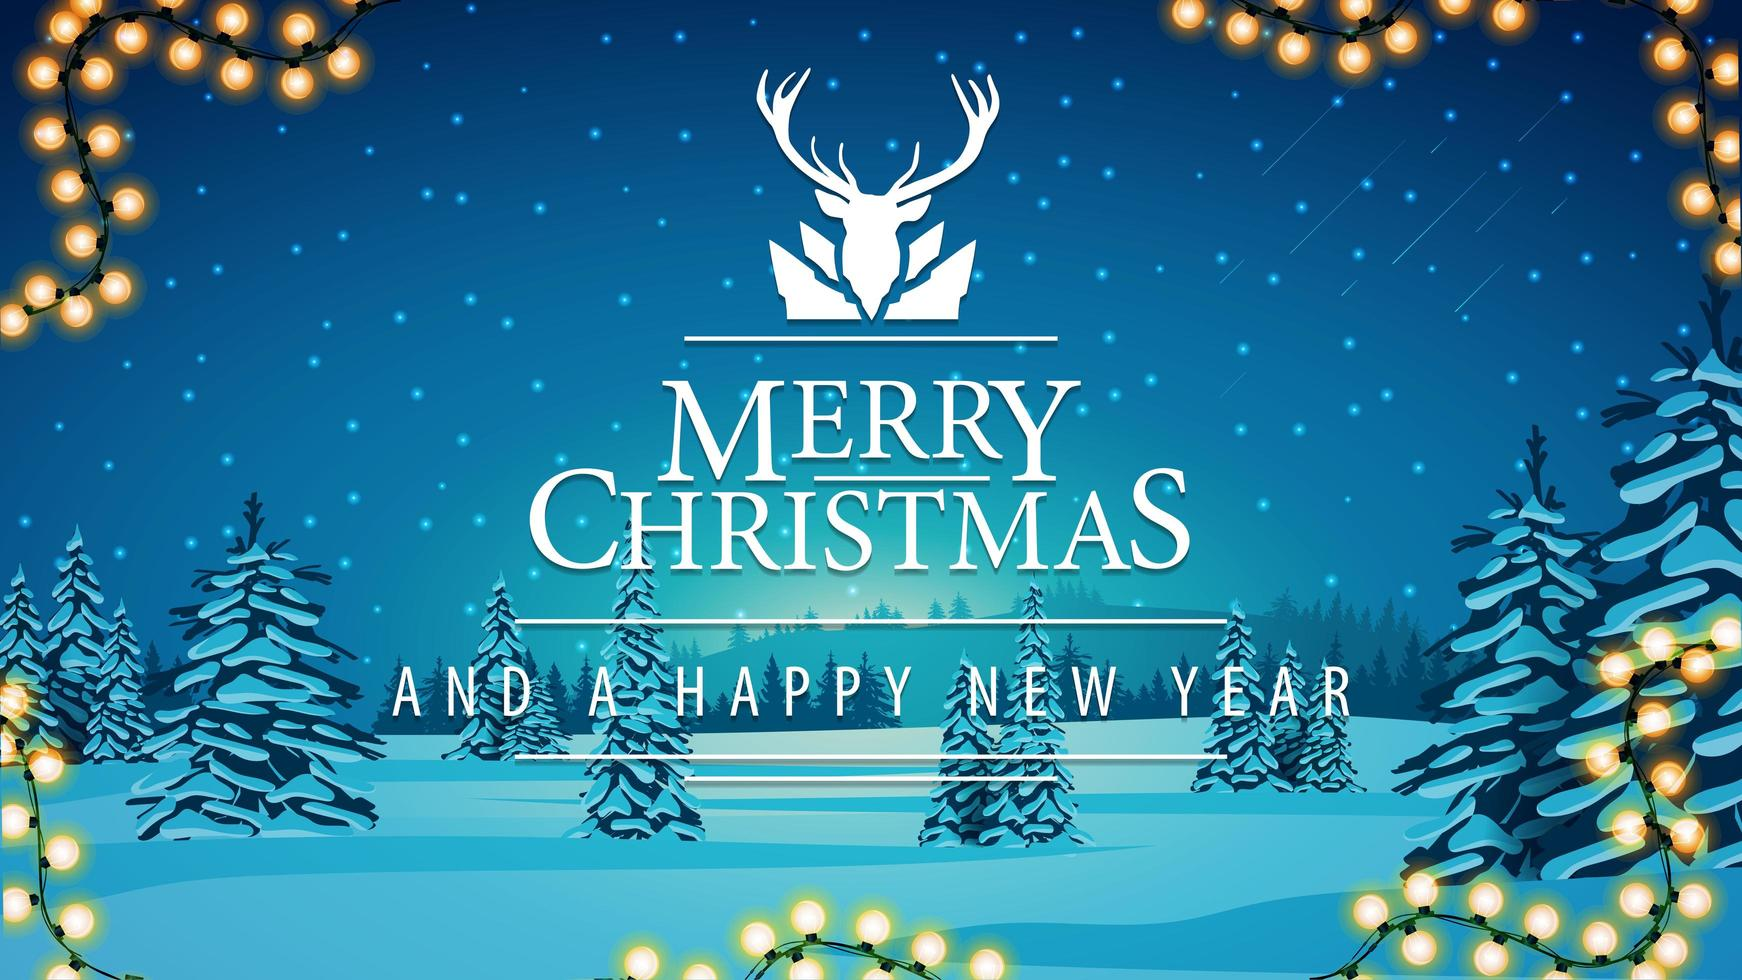 Merry Christmas and happy New Year greeting postcard vector